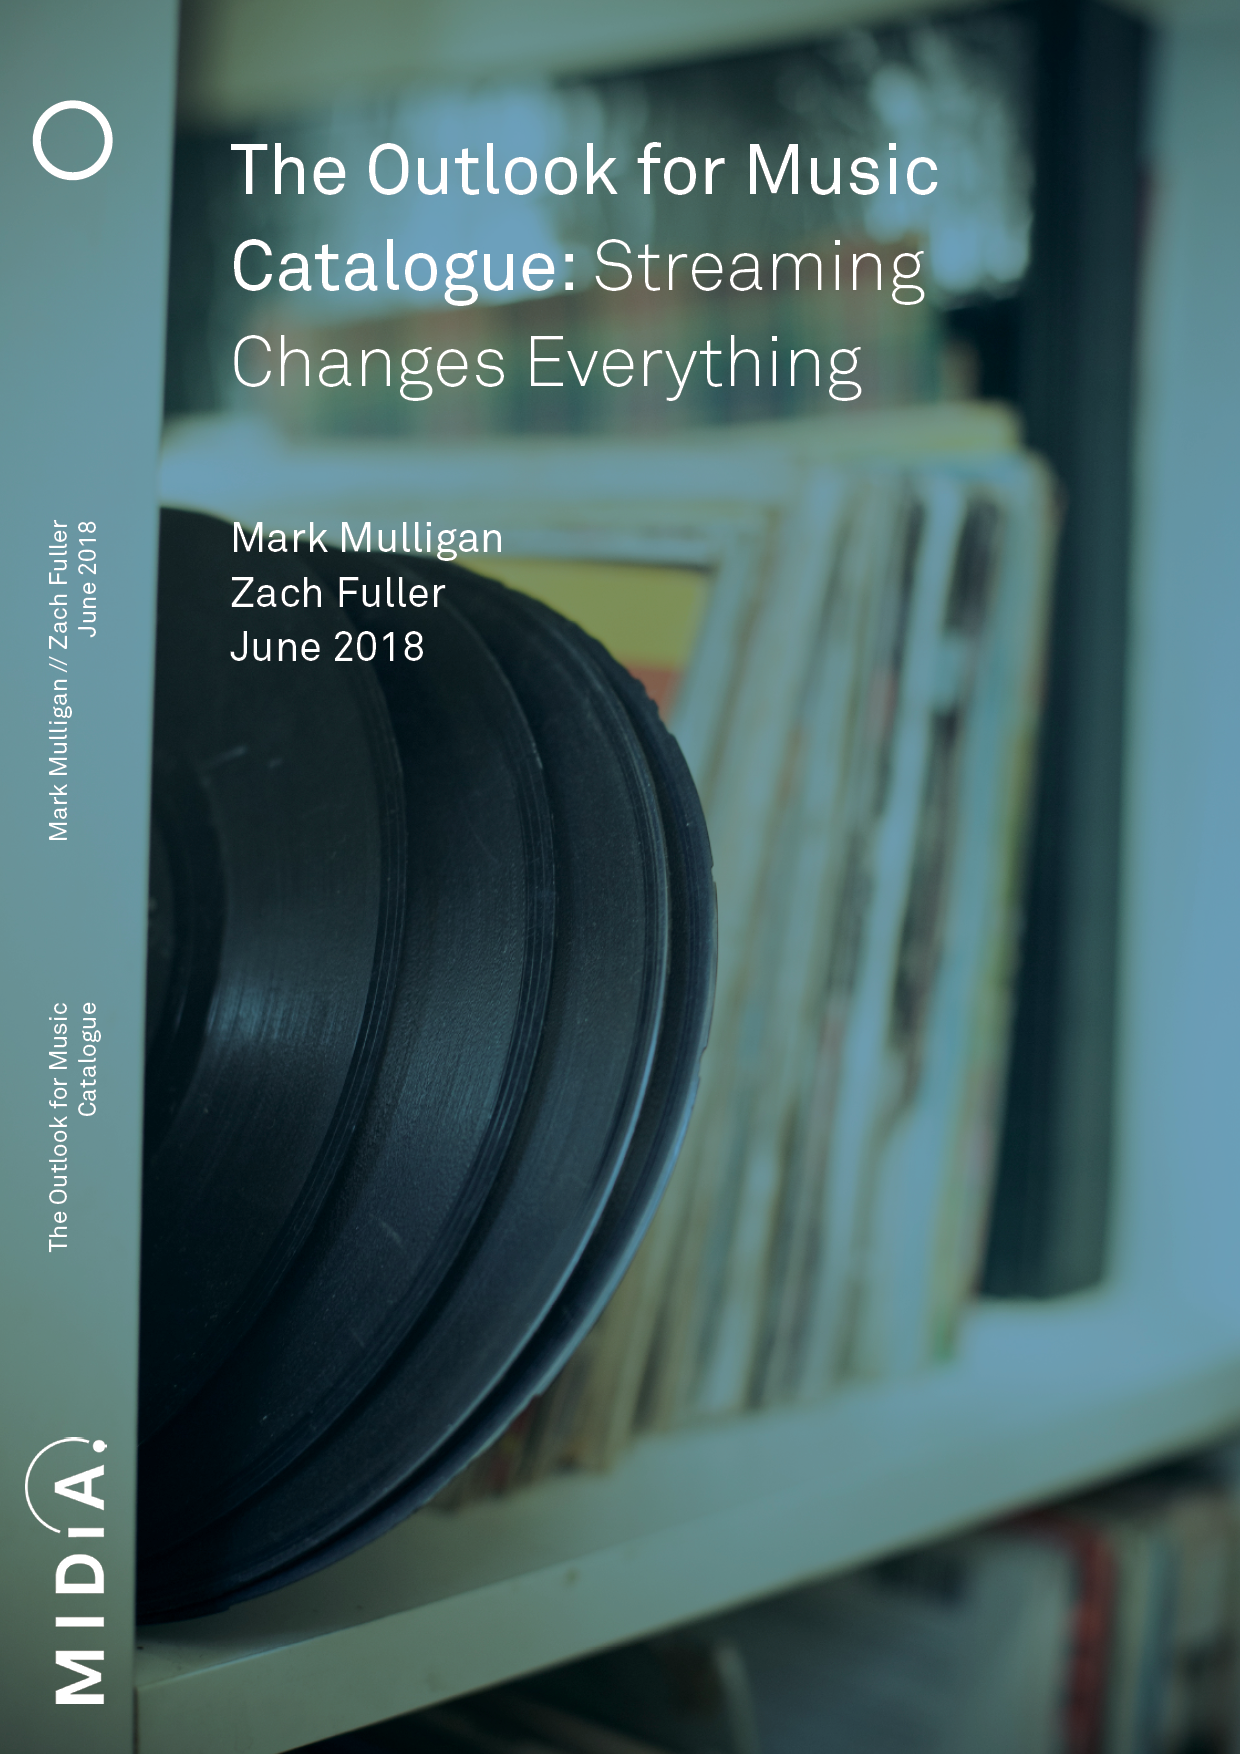 Cover image for The Outlook for Music Catalogue